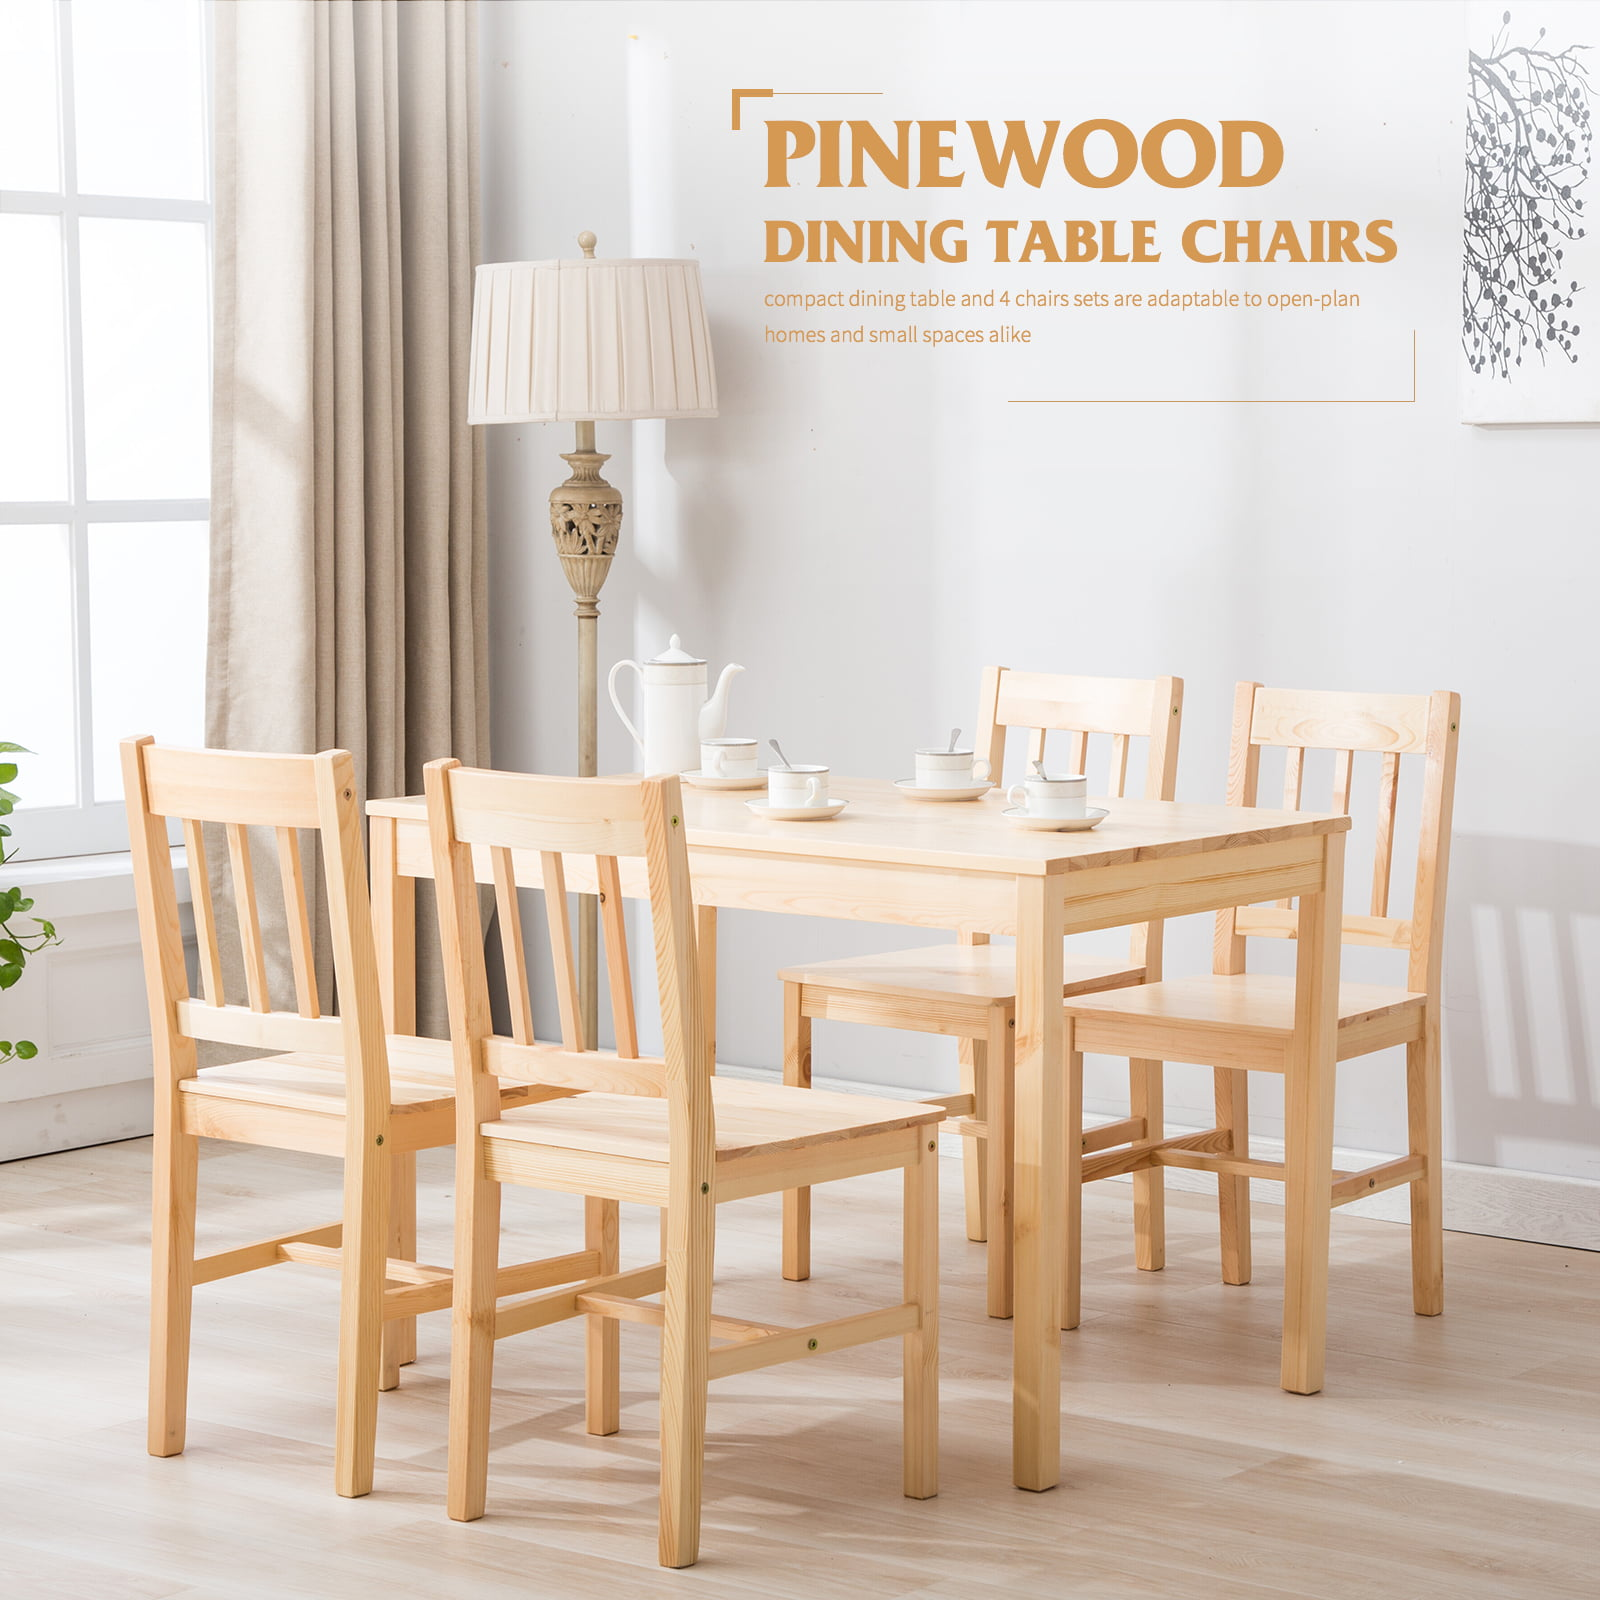 Image of: Mecor 5 Piece Kitchen Table Set Natural Pine Wood Table And 4 Chairs Walmart Com Walmart Com